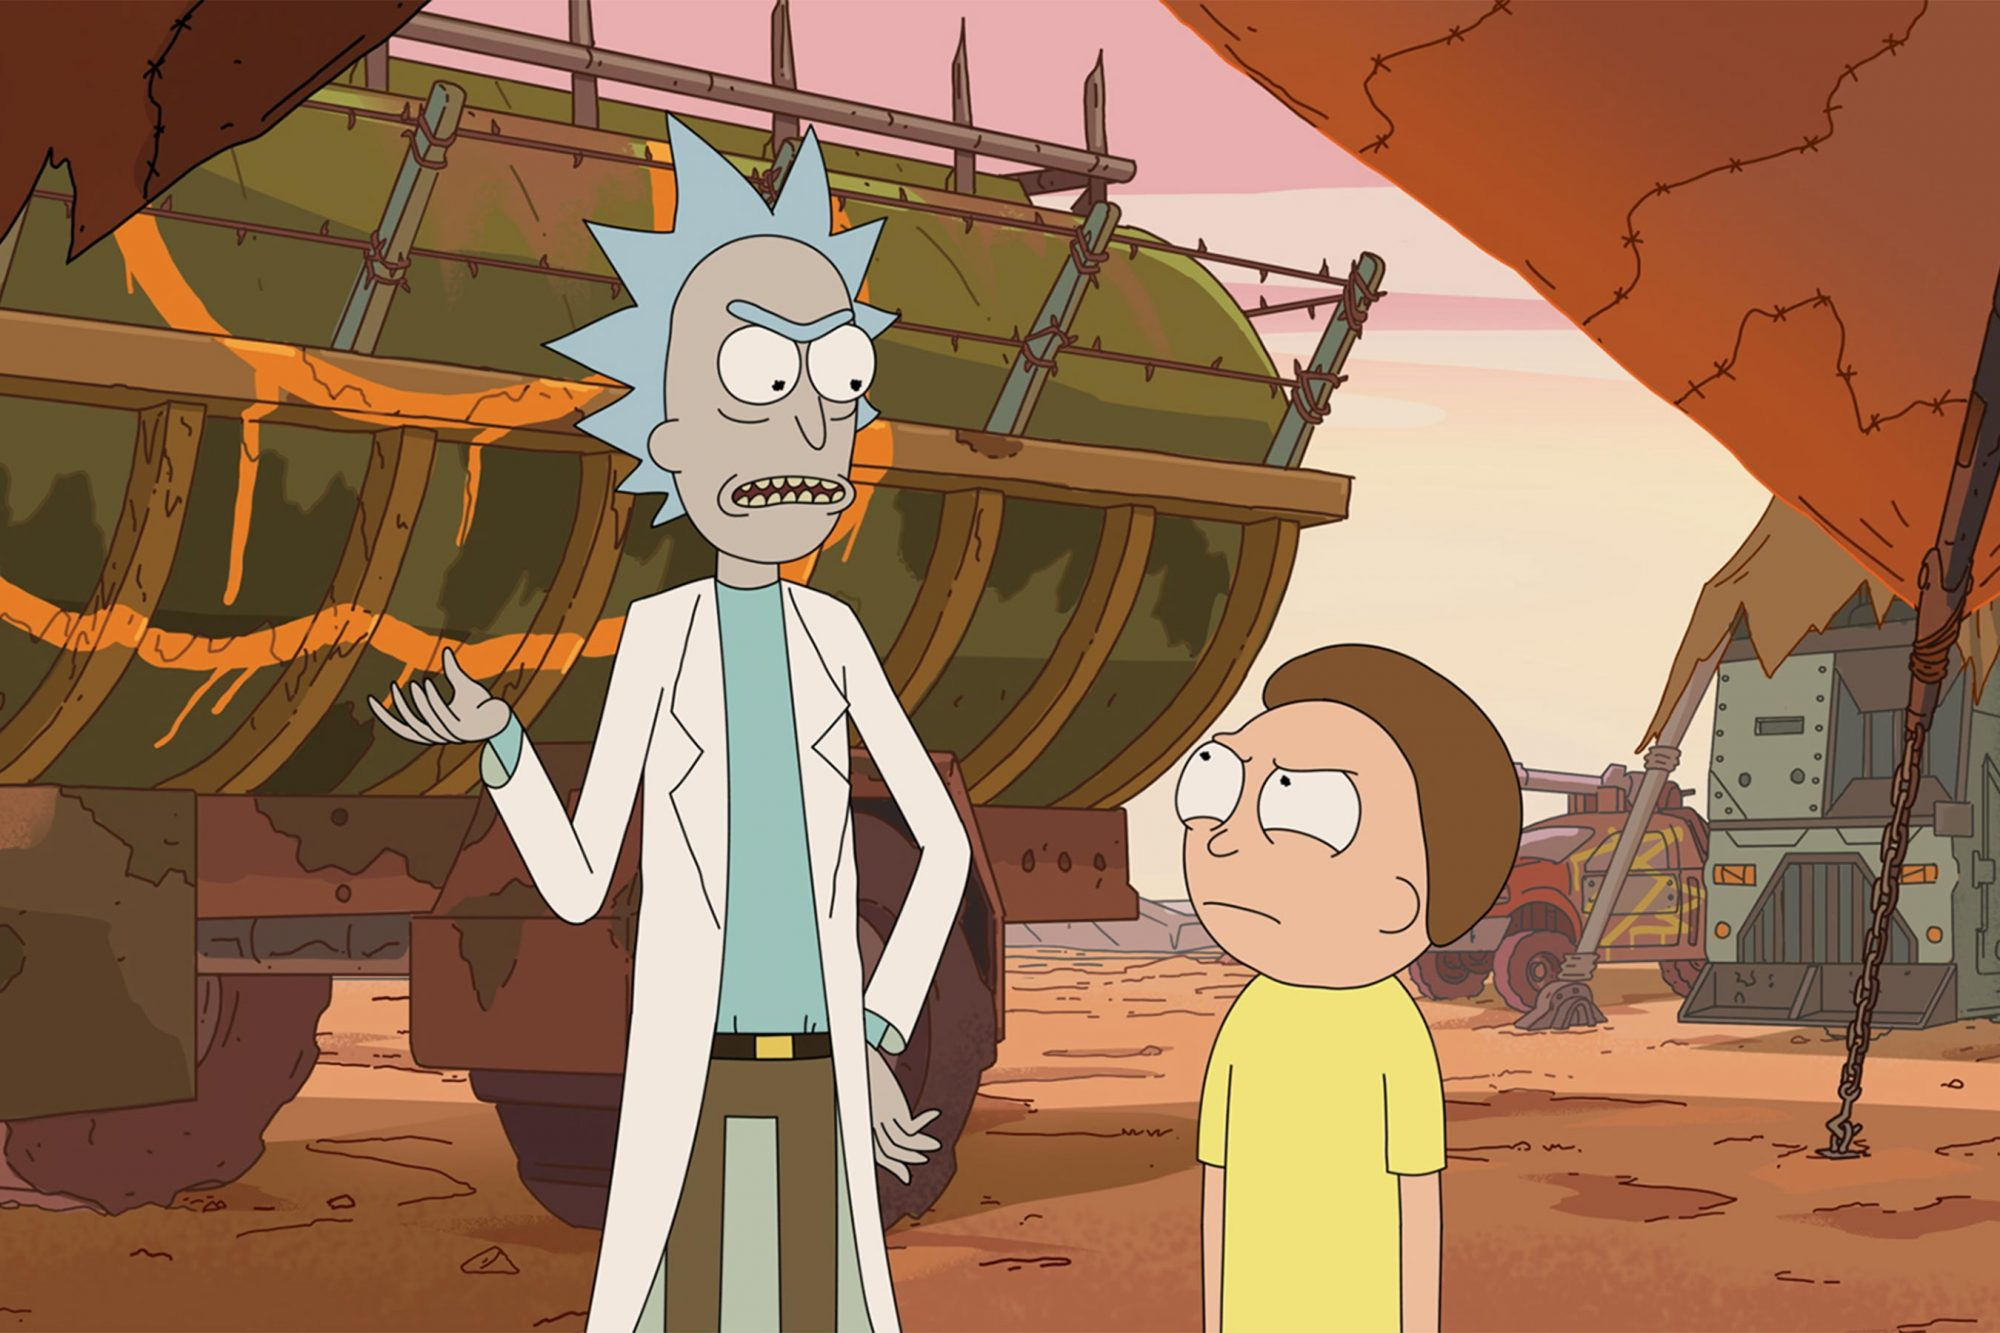 Rick and Morty Season 3 Image 2 (L to R) Rick Sanchez and Morty debate over the right decision. All new episodes of Rick and Morty start Sunday, July 30th at 11:30pm ET/PT on Adult Swim.